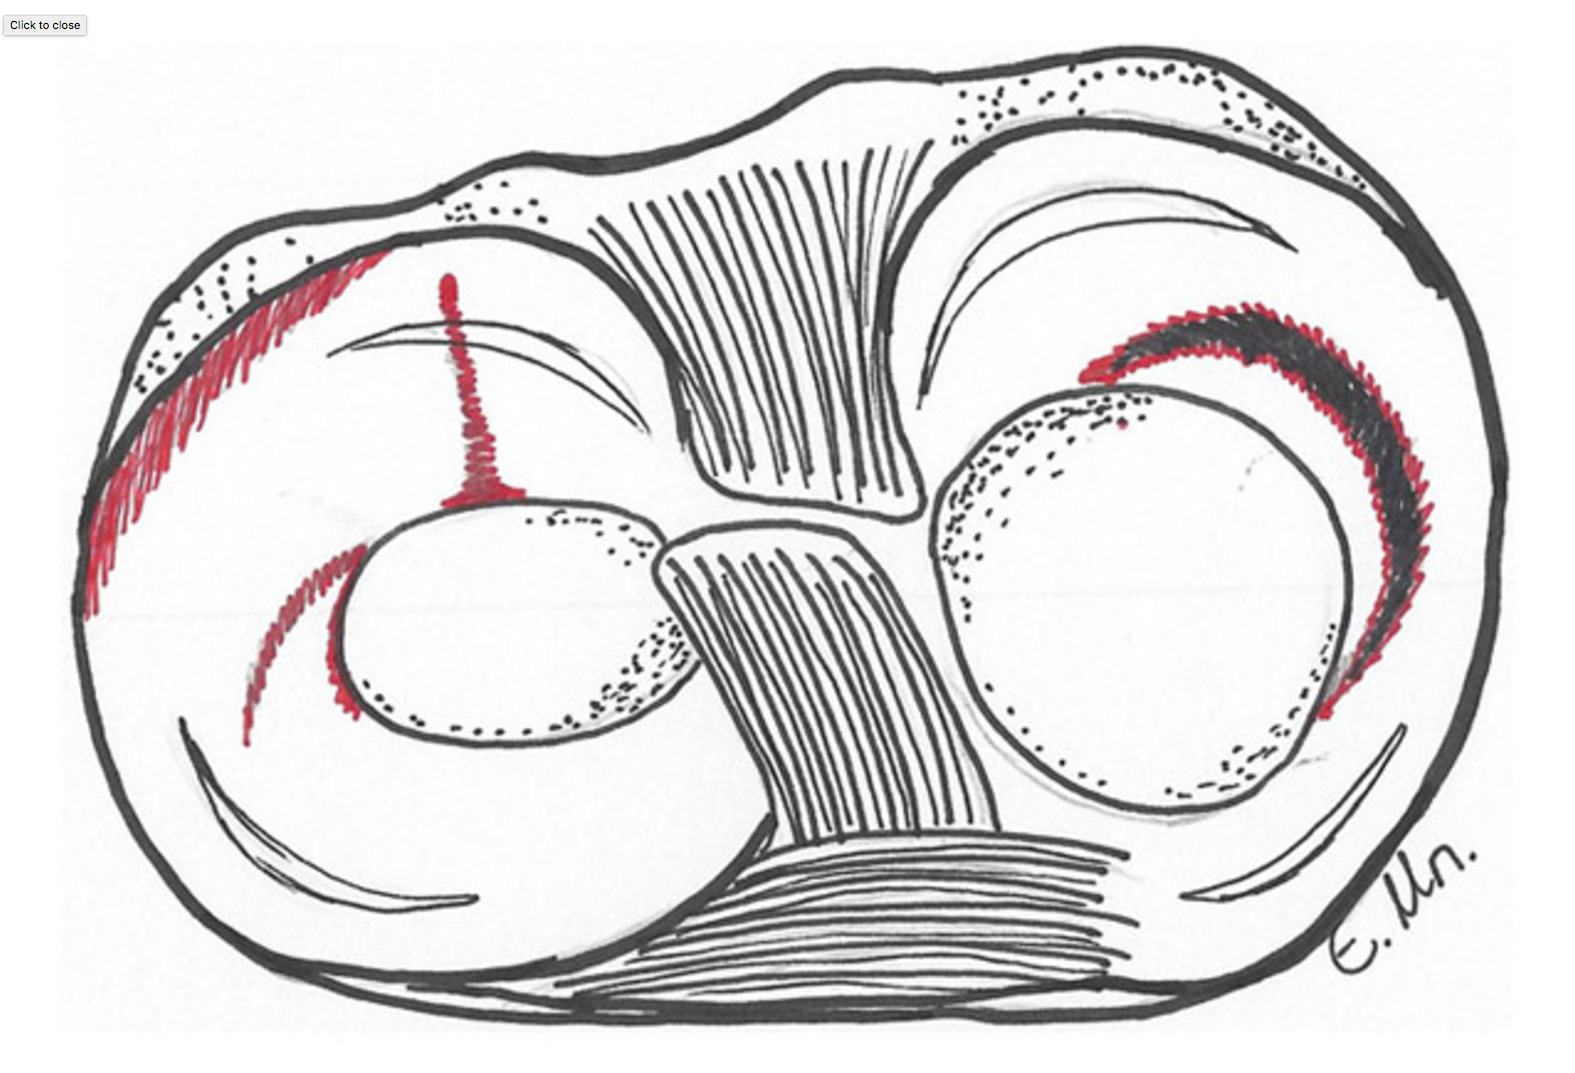 The meniscus can be torn in different places, some examples are shown in red in this picture.